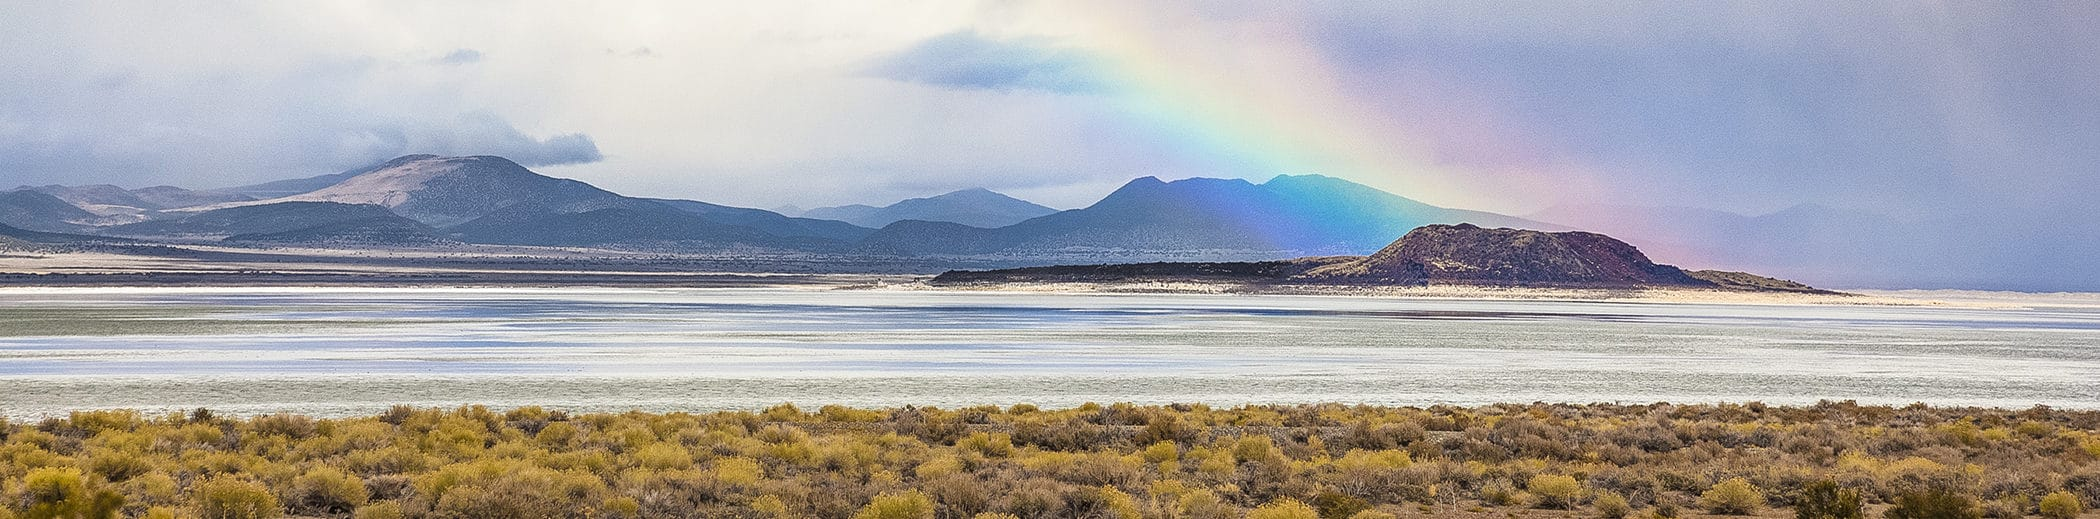 A bright rainbow ends at the black island of Negit in a silvery Mono Lake with storm clouds around and golden bushes in the foreground.